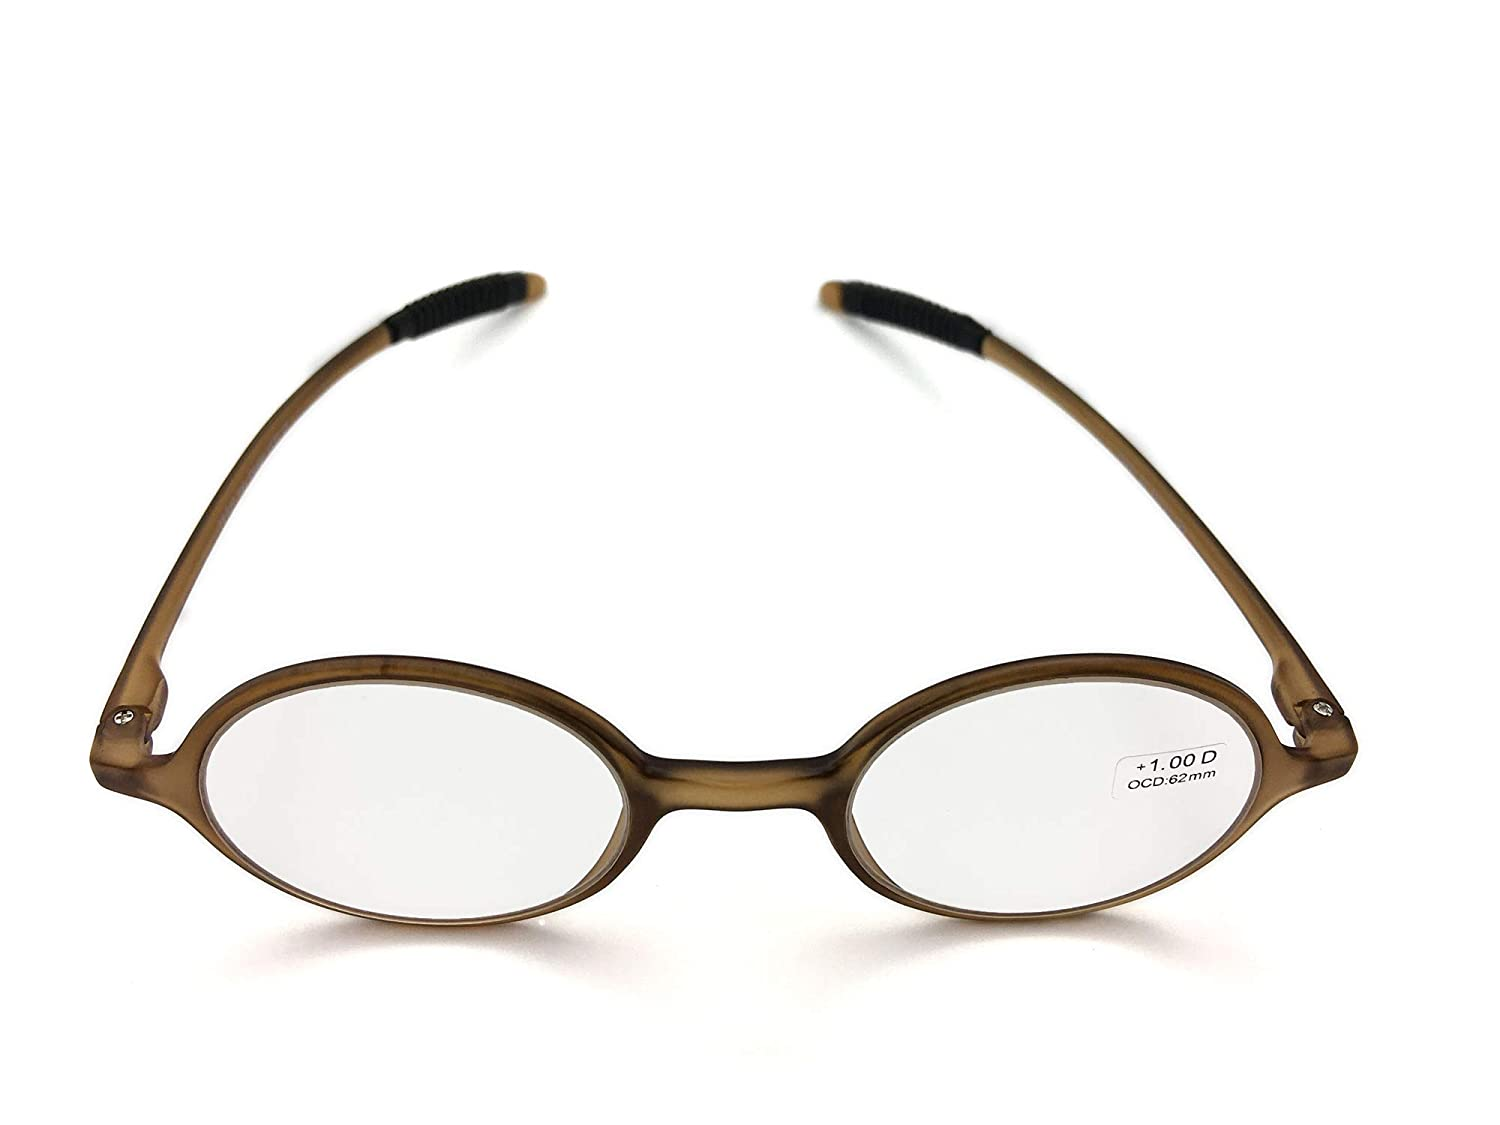 d22eba5b732 Amazon.com  Retro Fashion Round Reading Glasses Blue Light Blocking  Computer Reading Glasses for Men and Women +3.00  Health   Personal Care